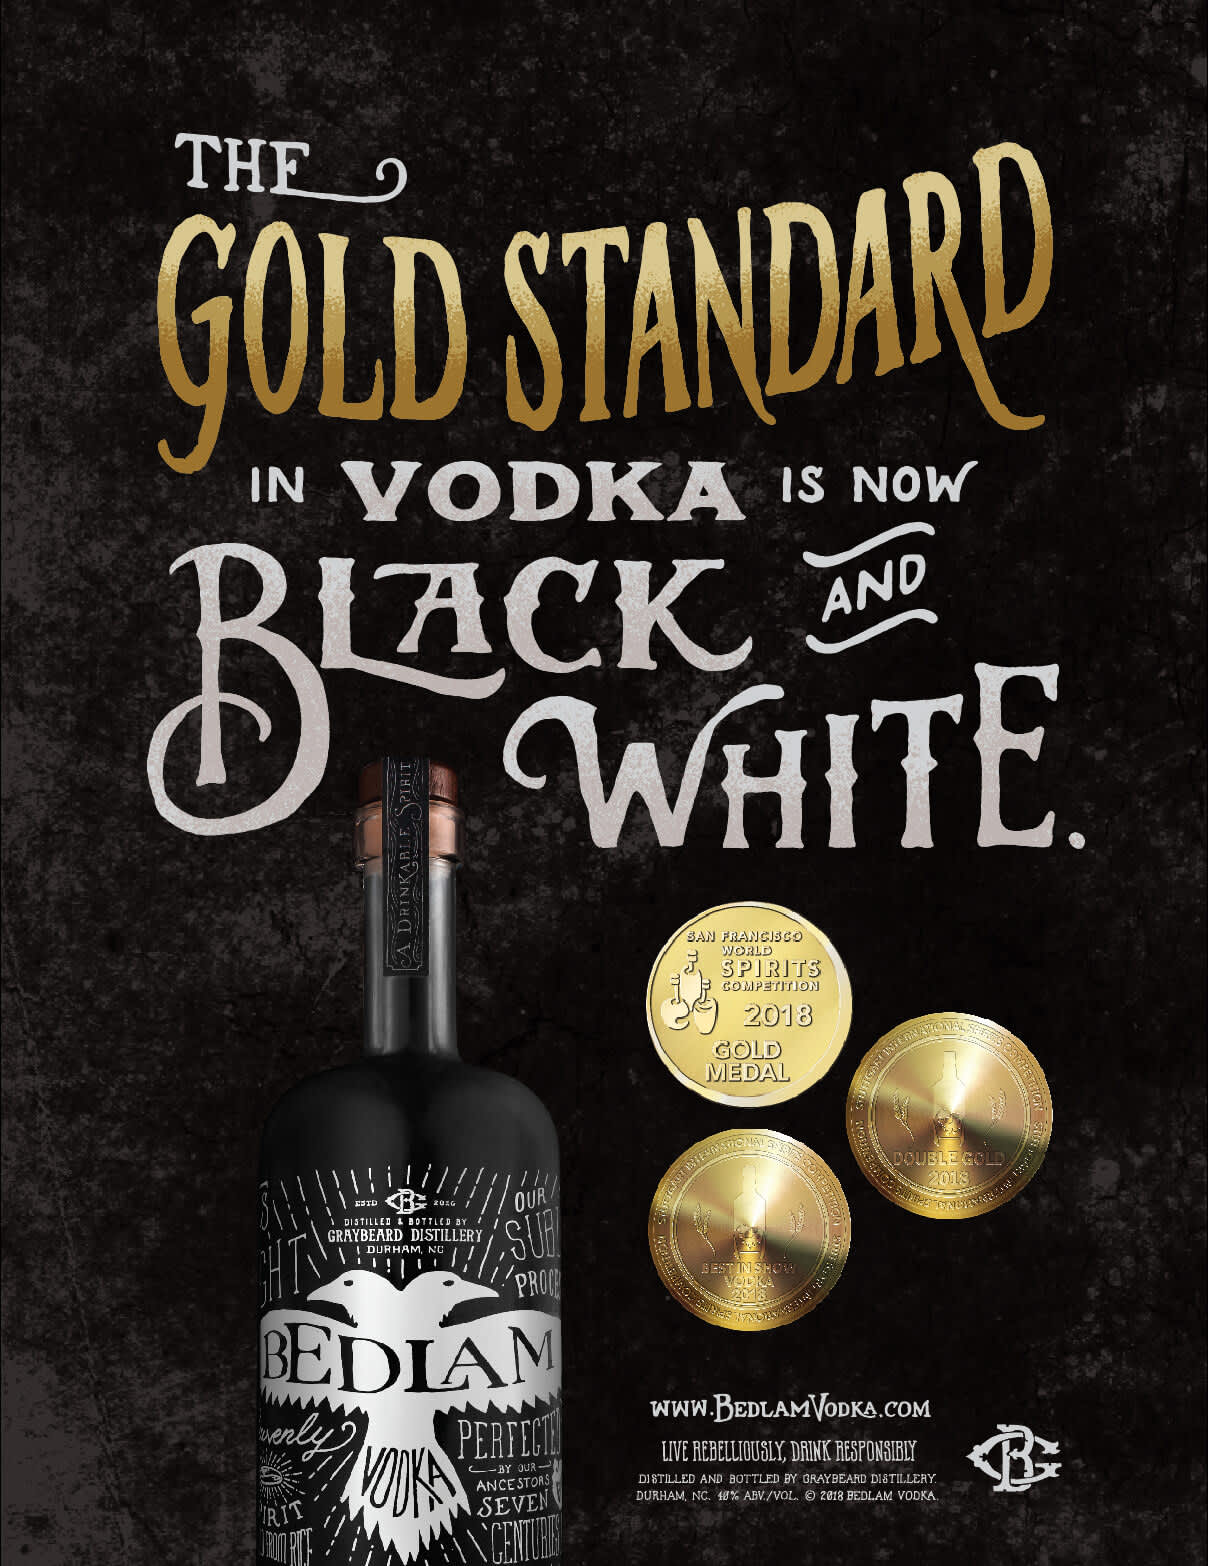 Bedlam Vodka advertising